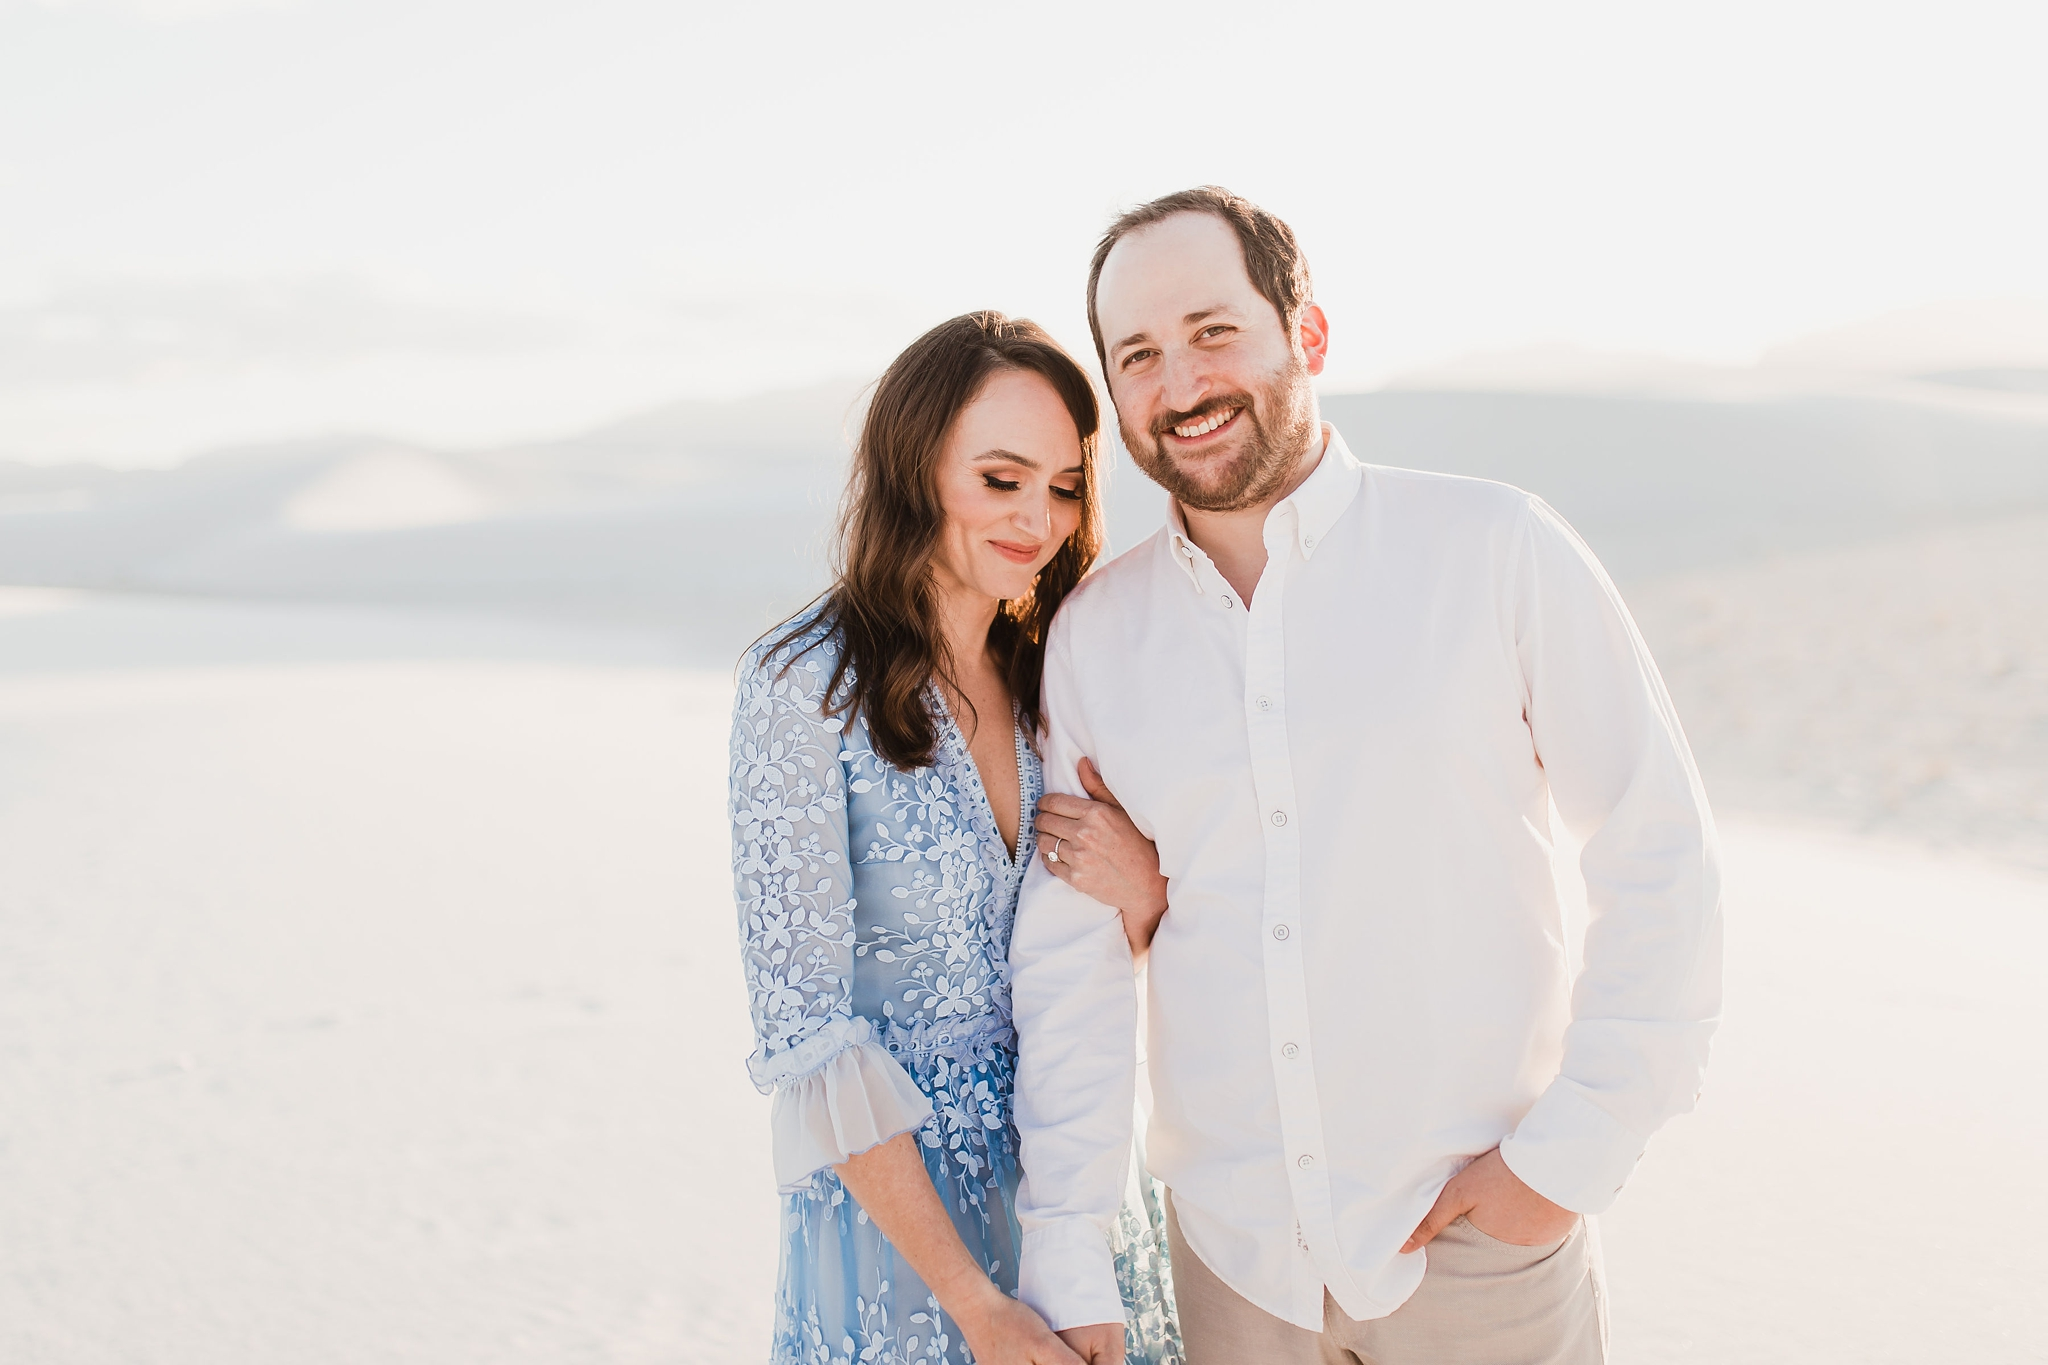 Alicia+lucia+photography+-+albuquerque+wedding+photographer+-+santa+fe+wedding+photography+-+new+mexico+wedding+photographer+-+new+mexico+wedding+-+new+mexico+engagement+-+white+sands+engagement+-+white+sands+national+monument_0030.jpg